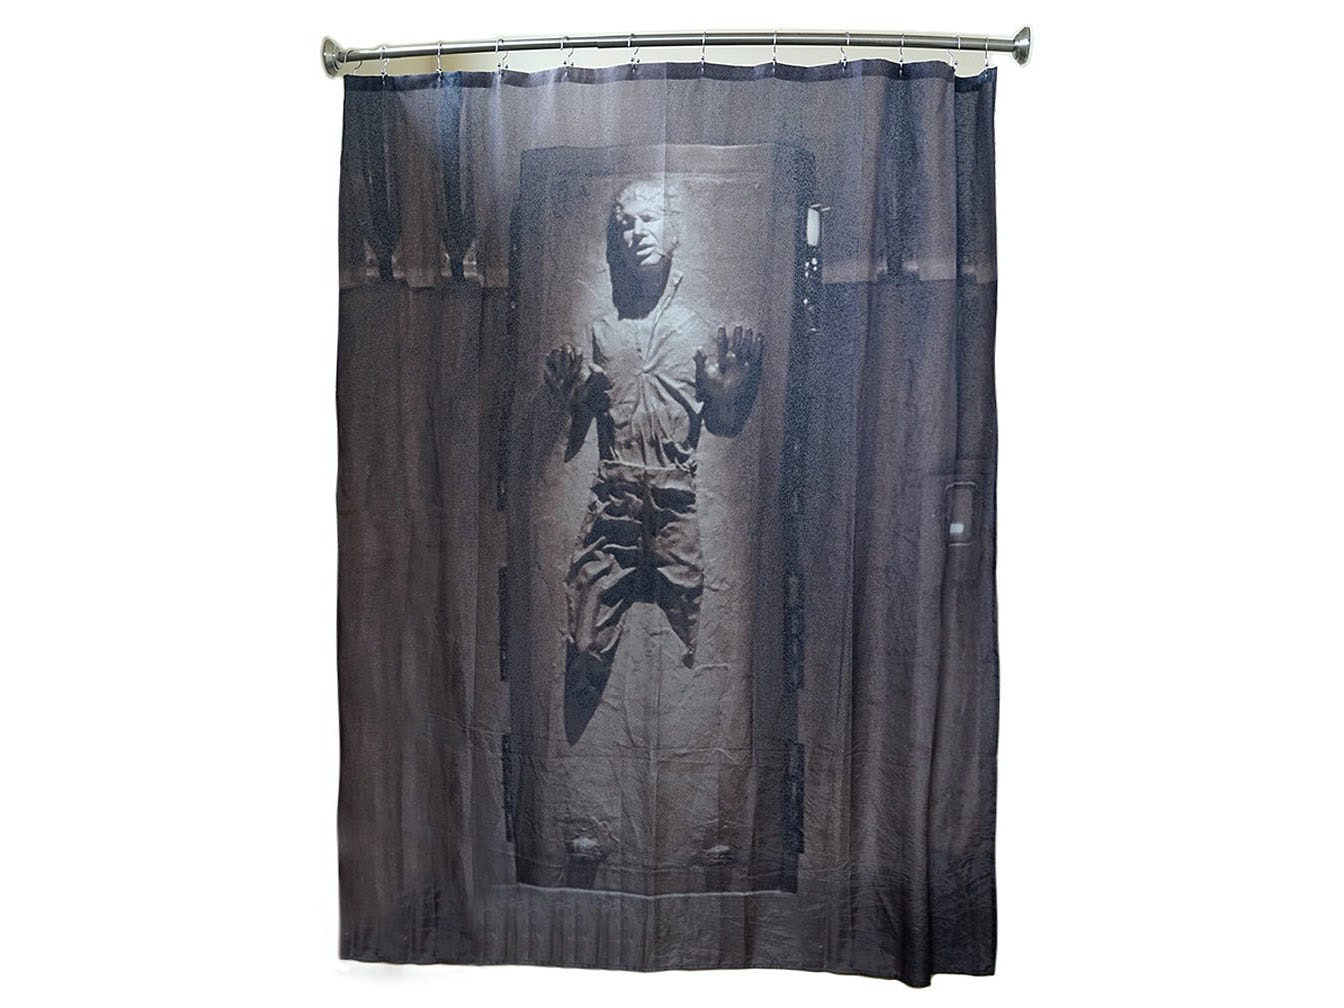 This iconic carbonite shower curtain